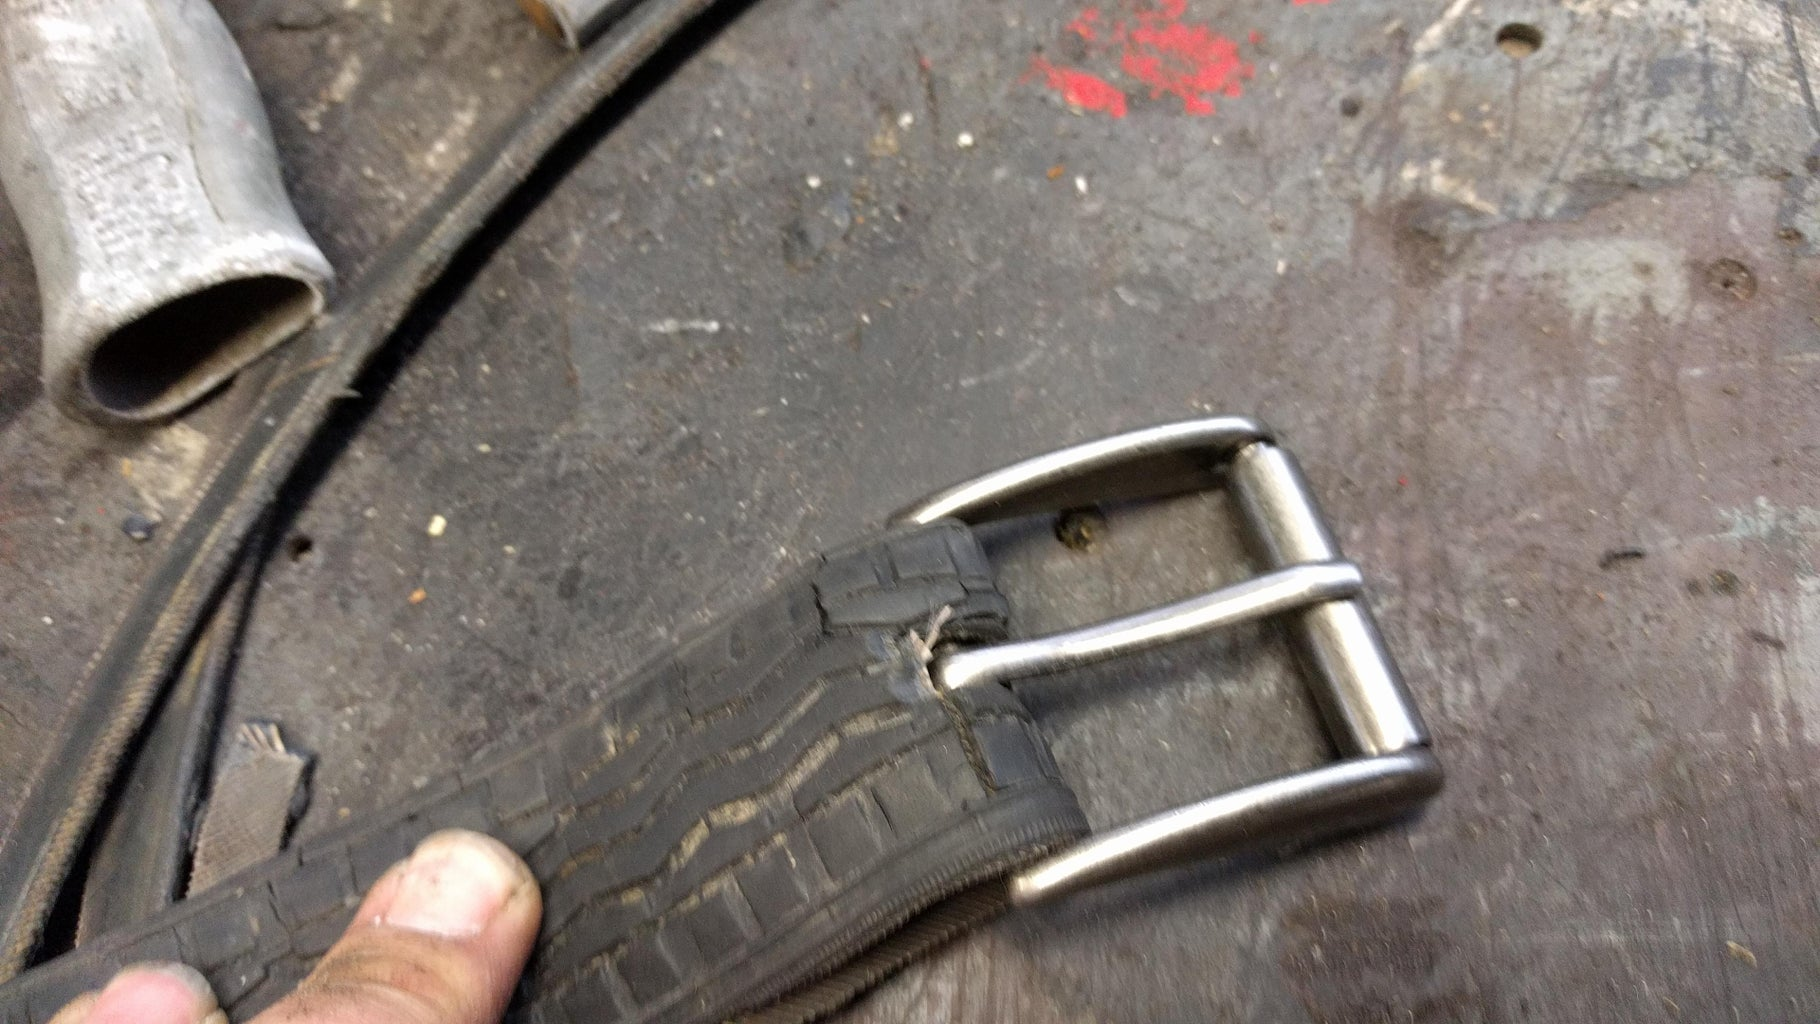 Securing the Buckle in Place